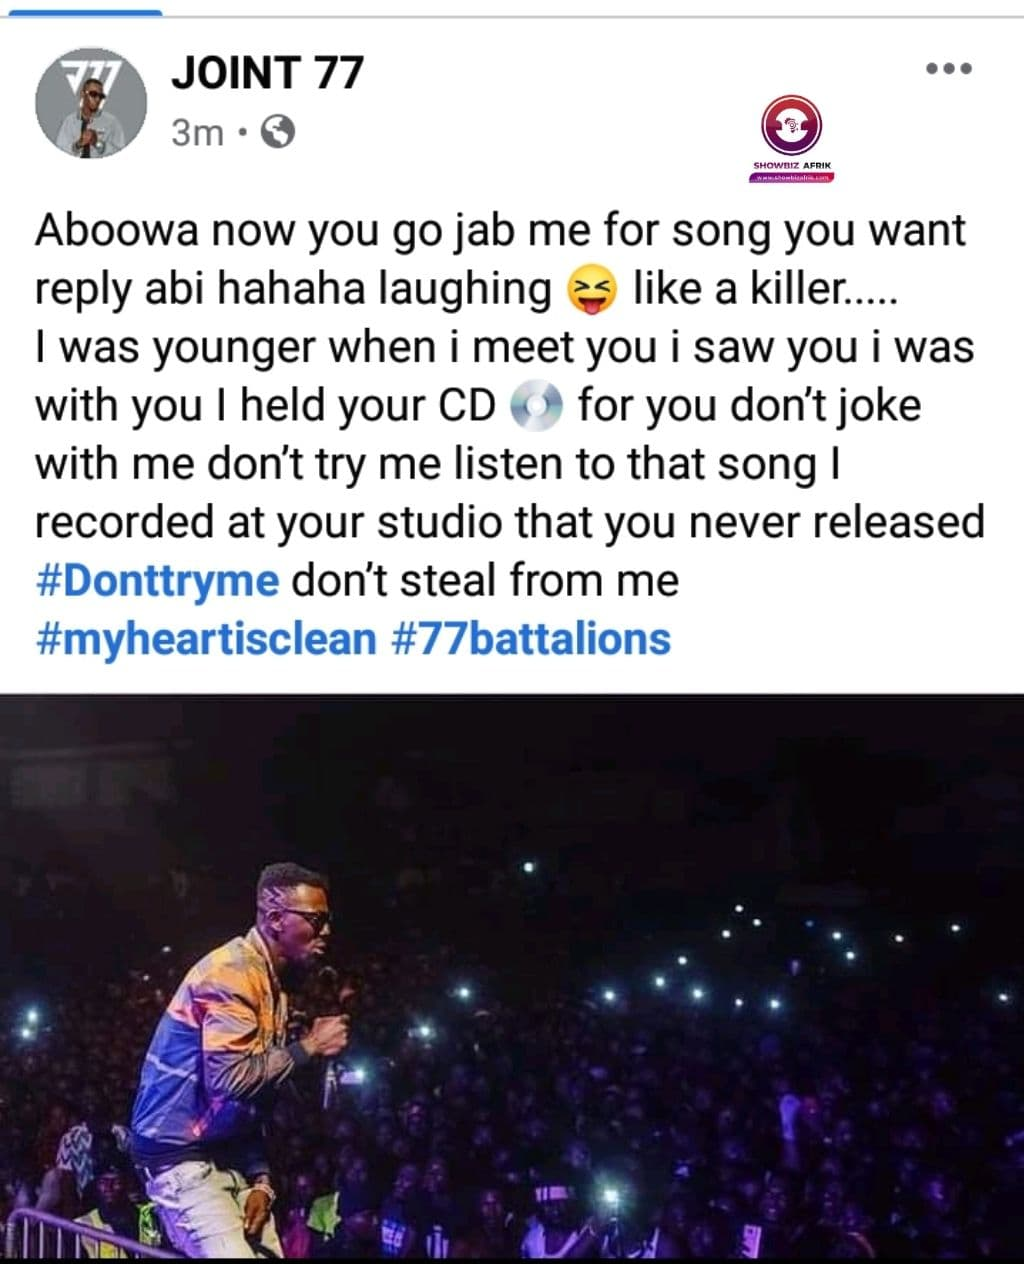 shatta wale and joint 77